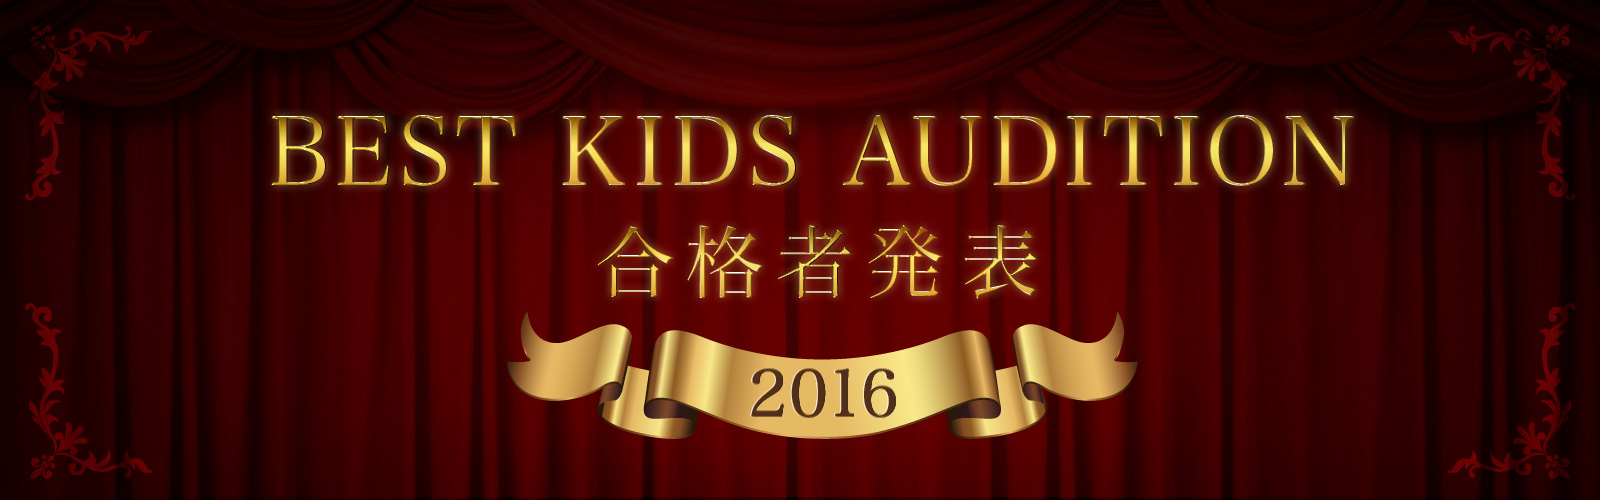 BEST KIDS AUDITION 2016 合格者発表